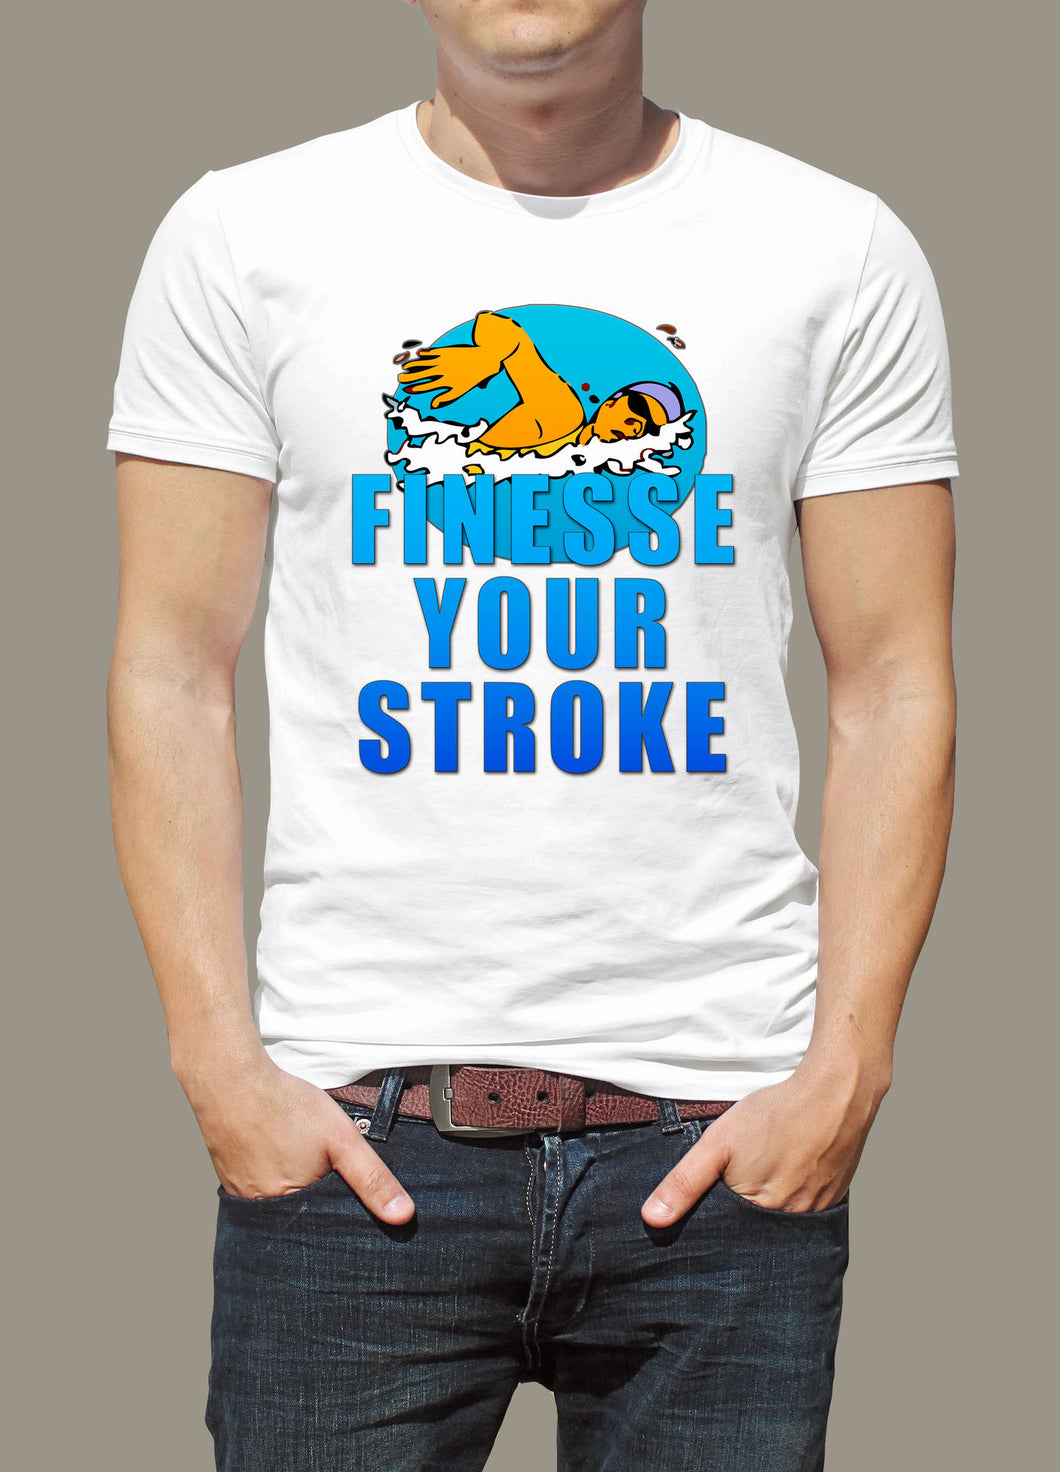 Swimming Finesse Your Stroke T-Shirt